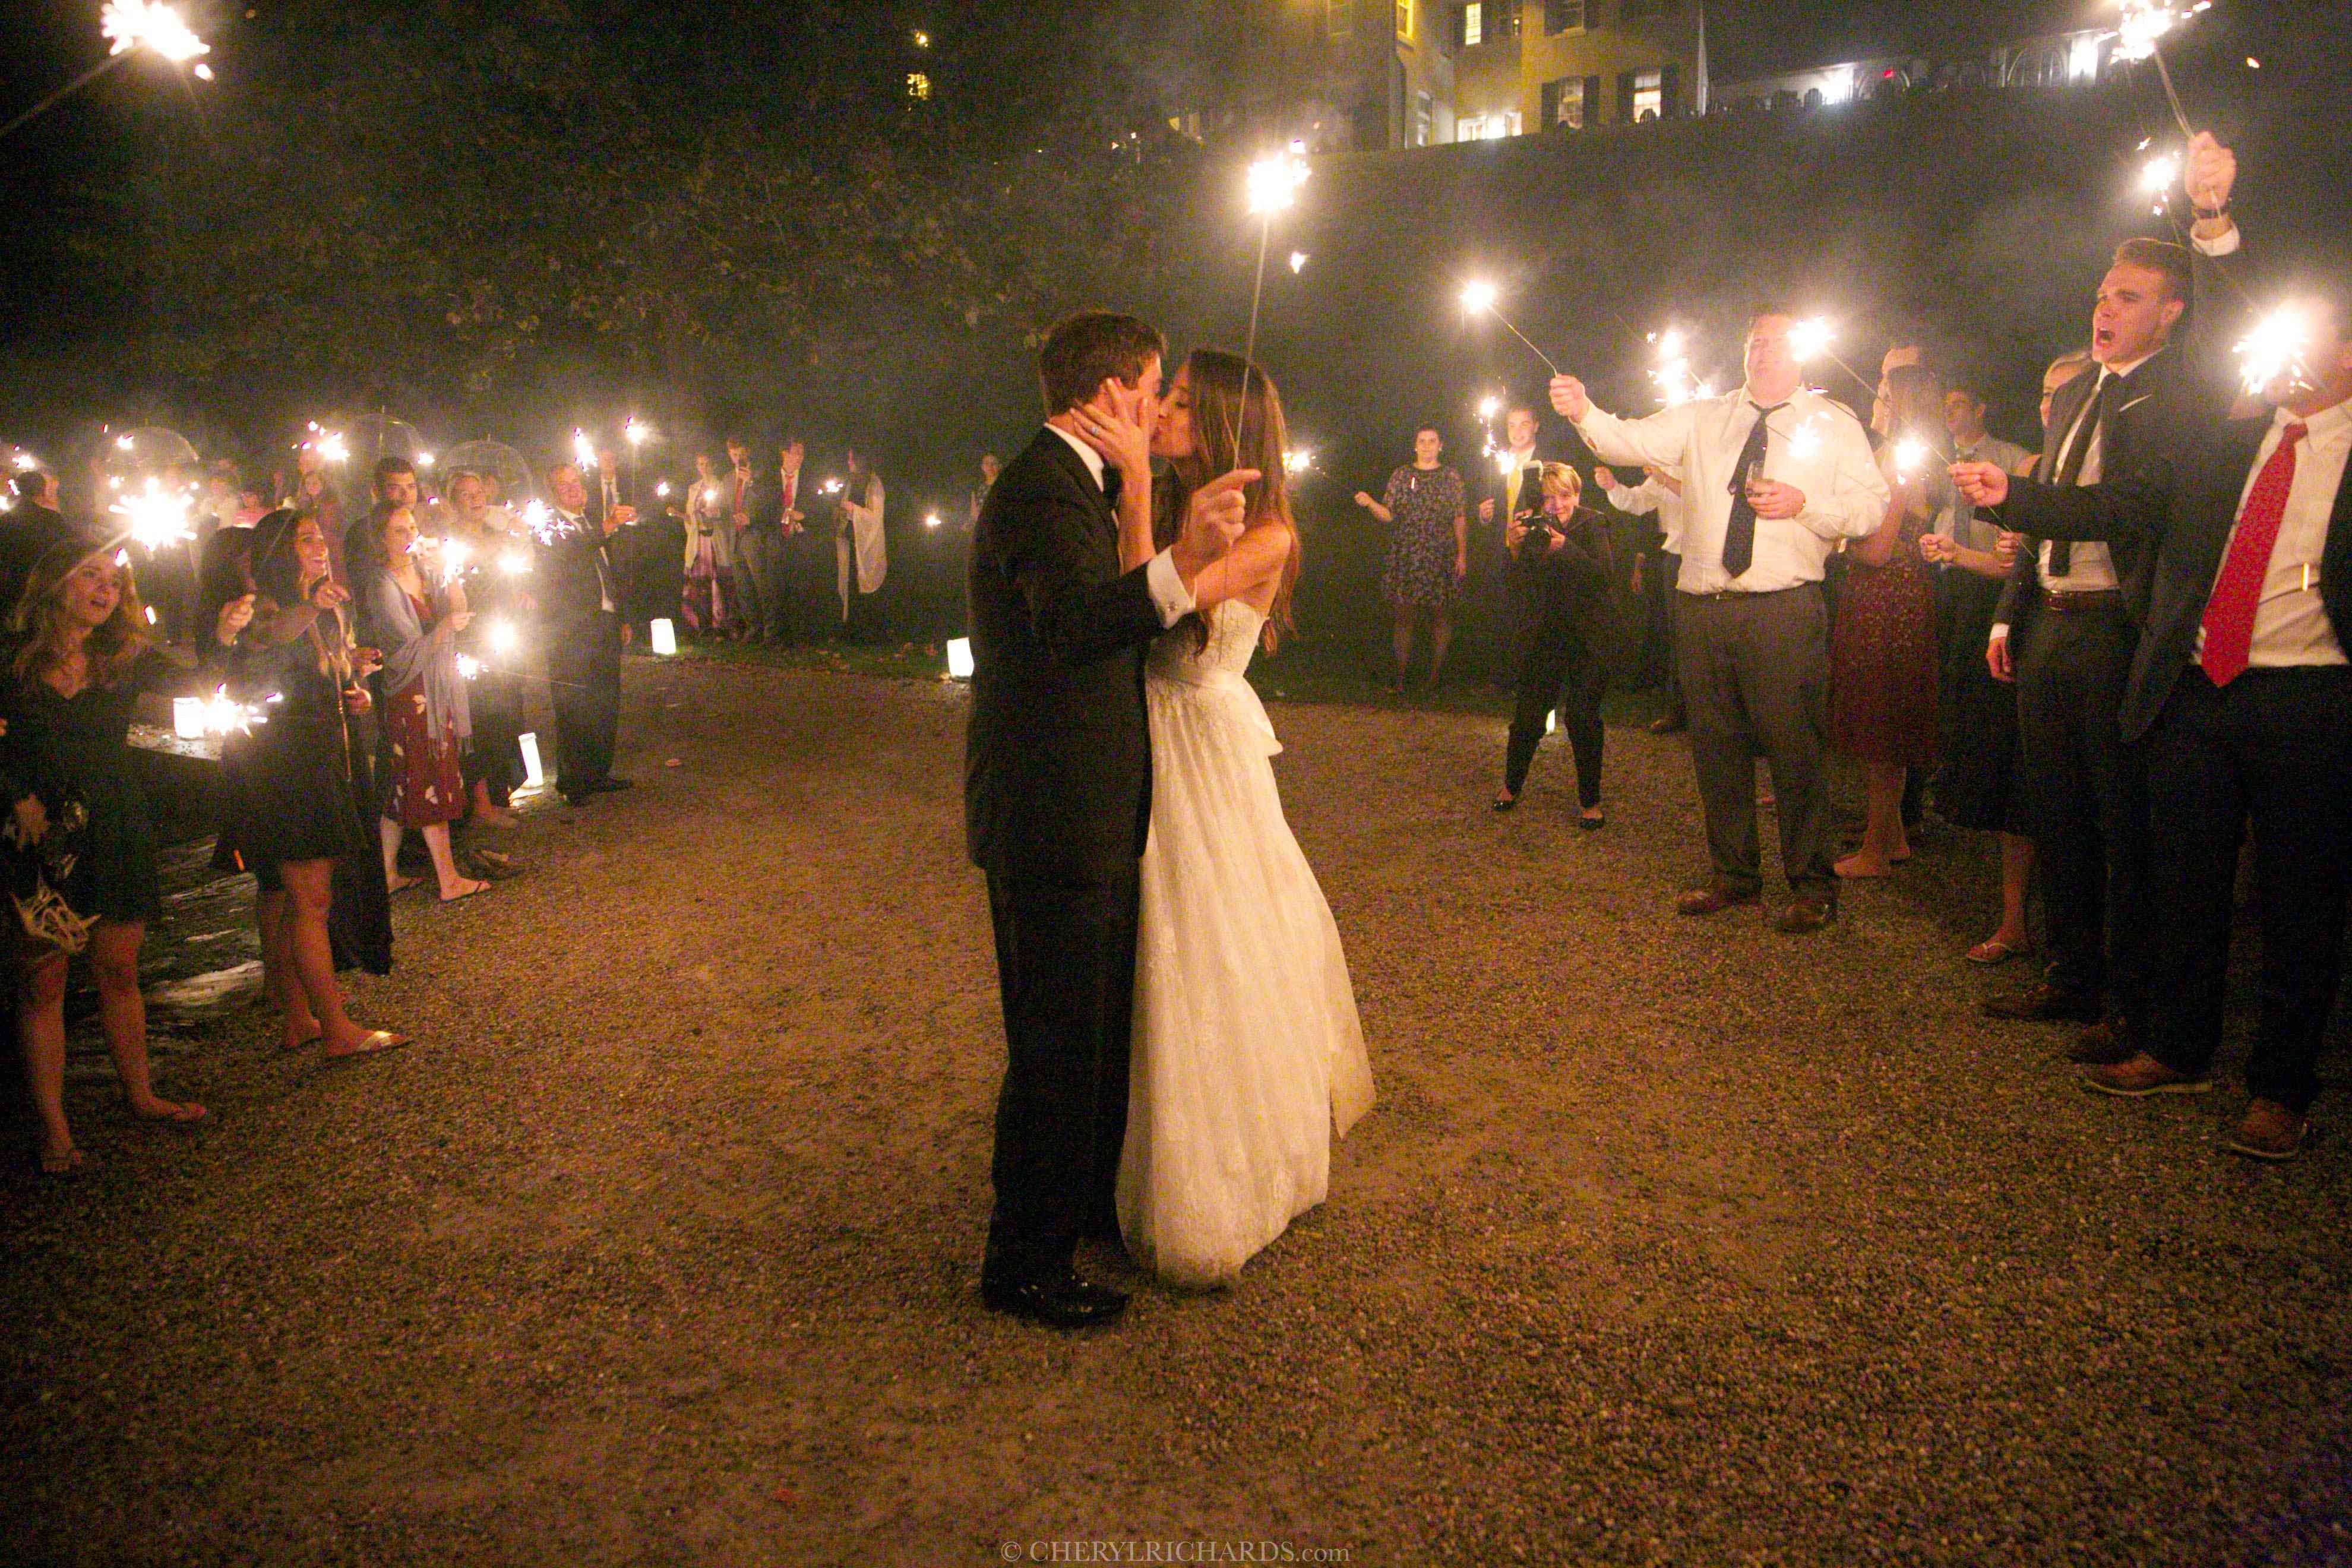 A couple kissing while holding sparklers